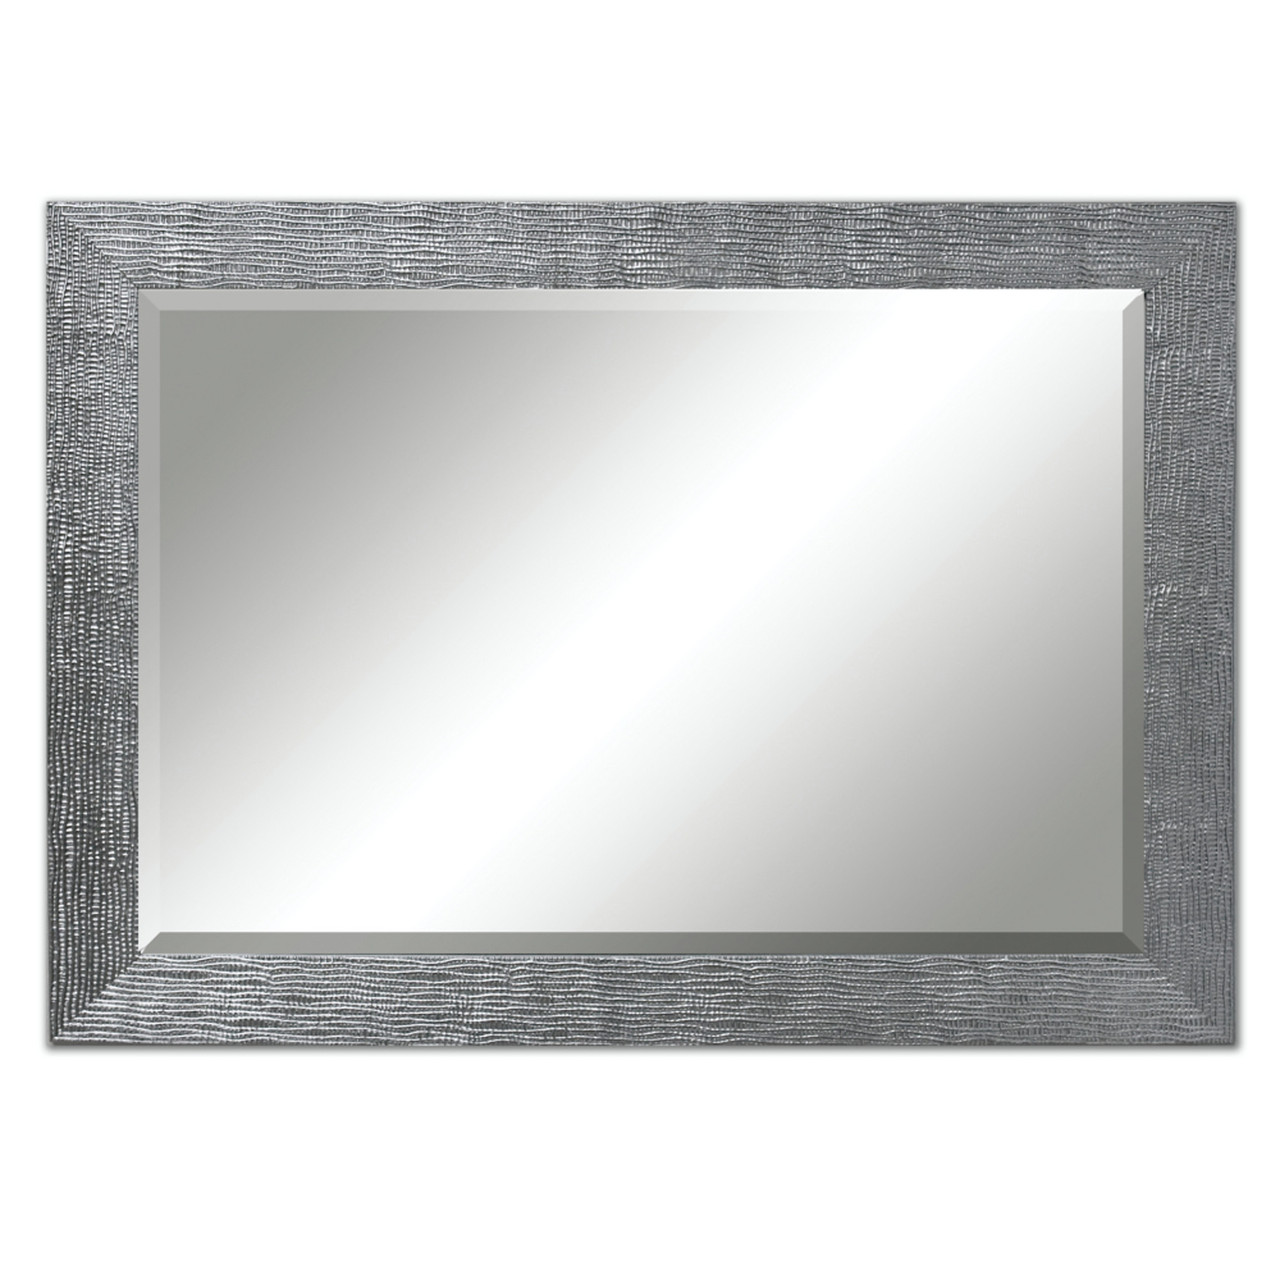 Exotic Beveled Rectangular Mirror with Textured Animal Skin Silver ...